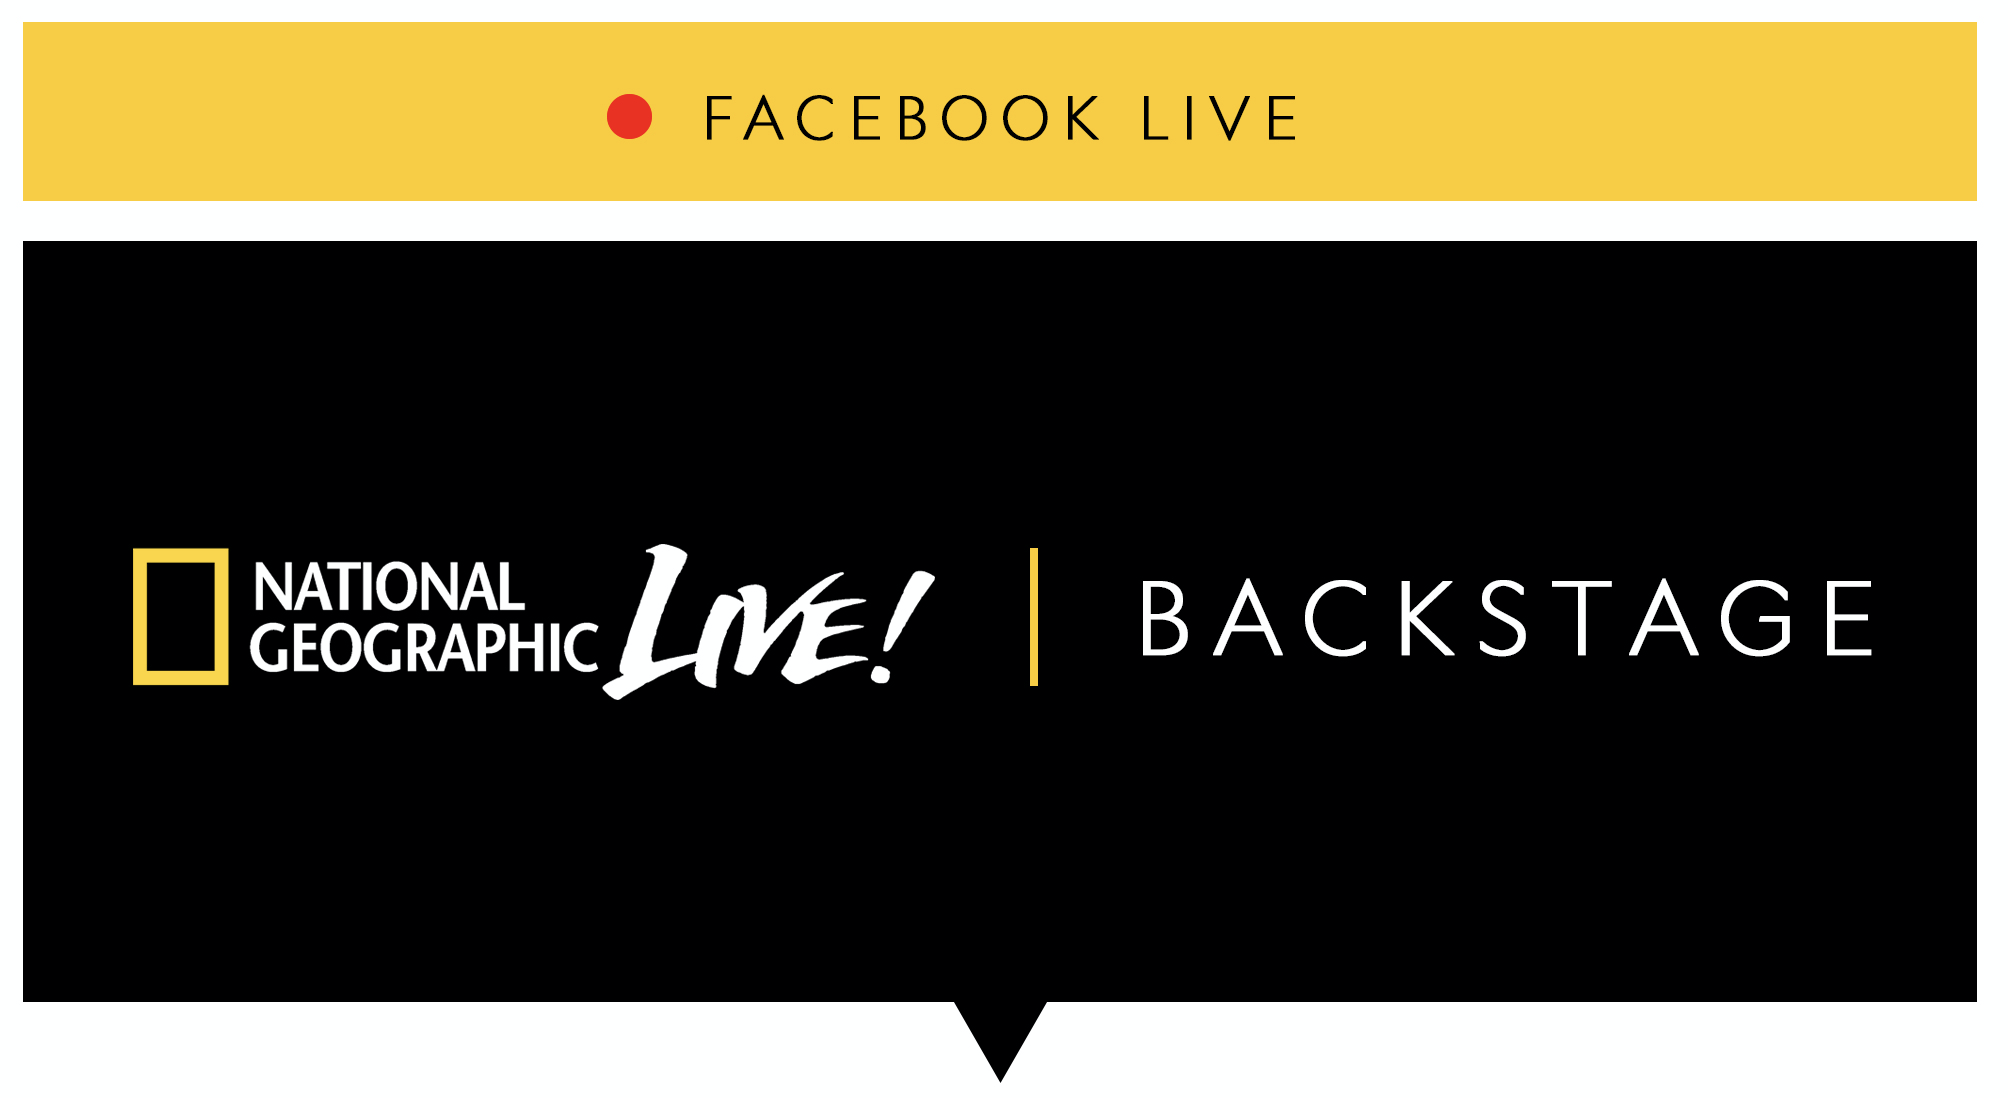 Media Advisory: National Geographic Launches Virtual Speaker Series on Facebook Live